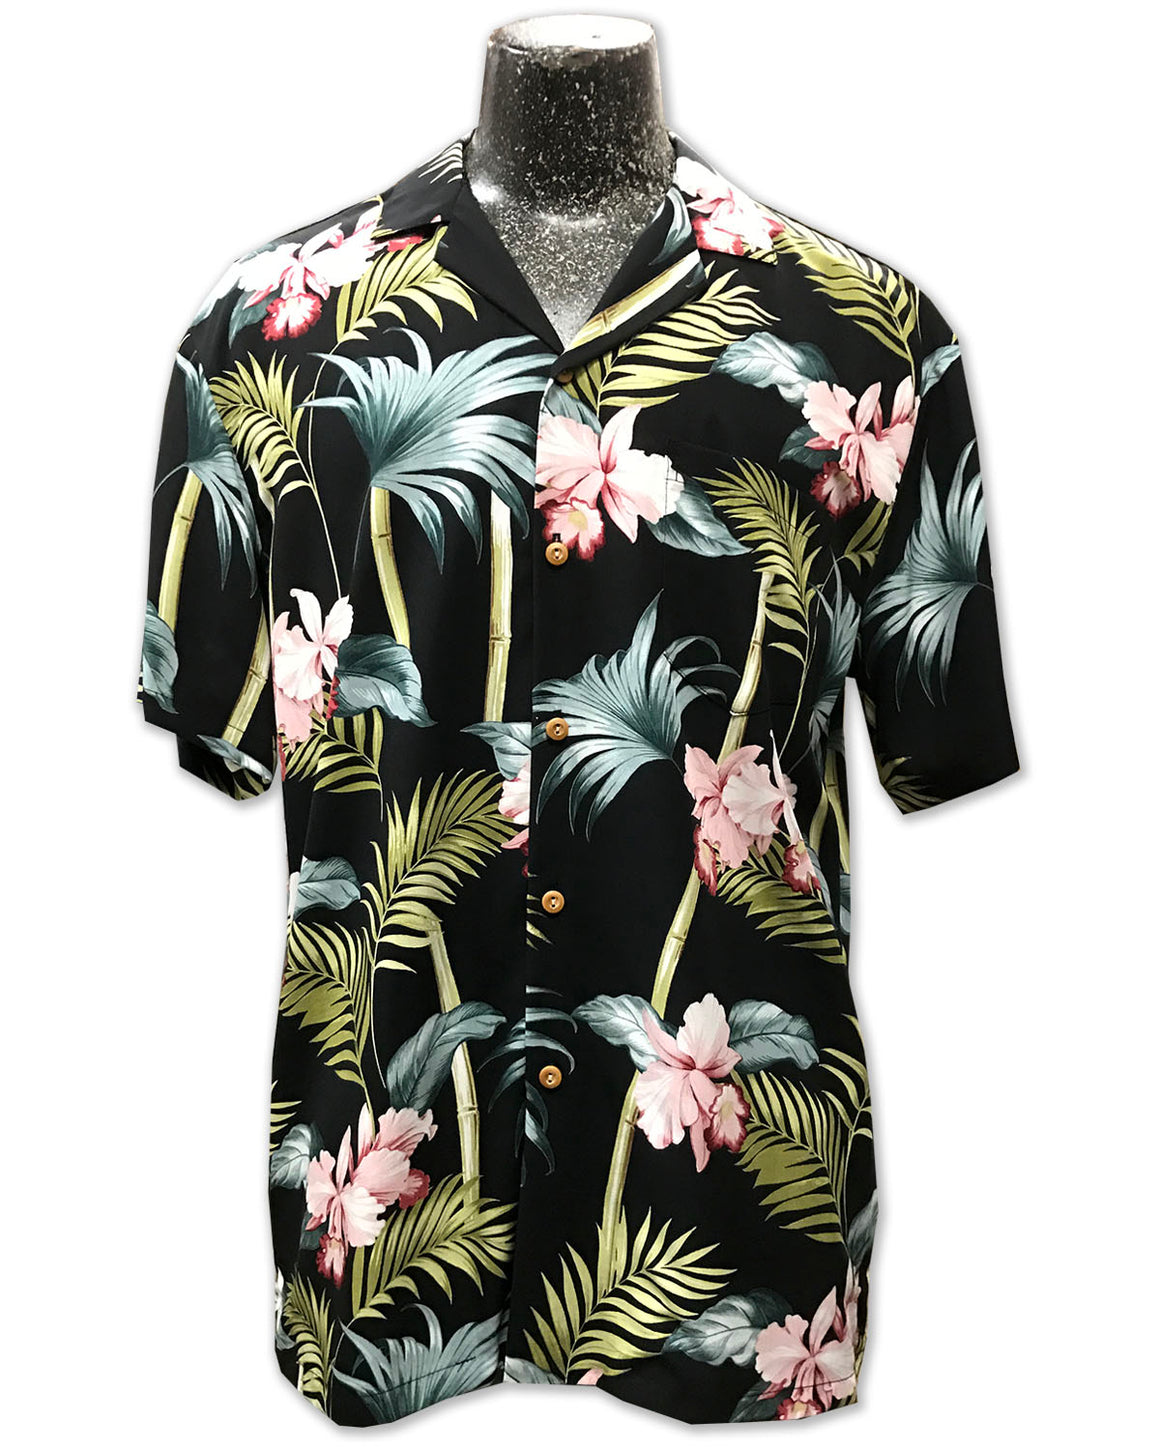 Bamboo Orchid Black Hawaiian Shirt